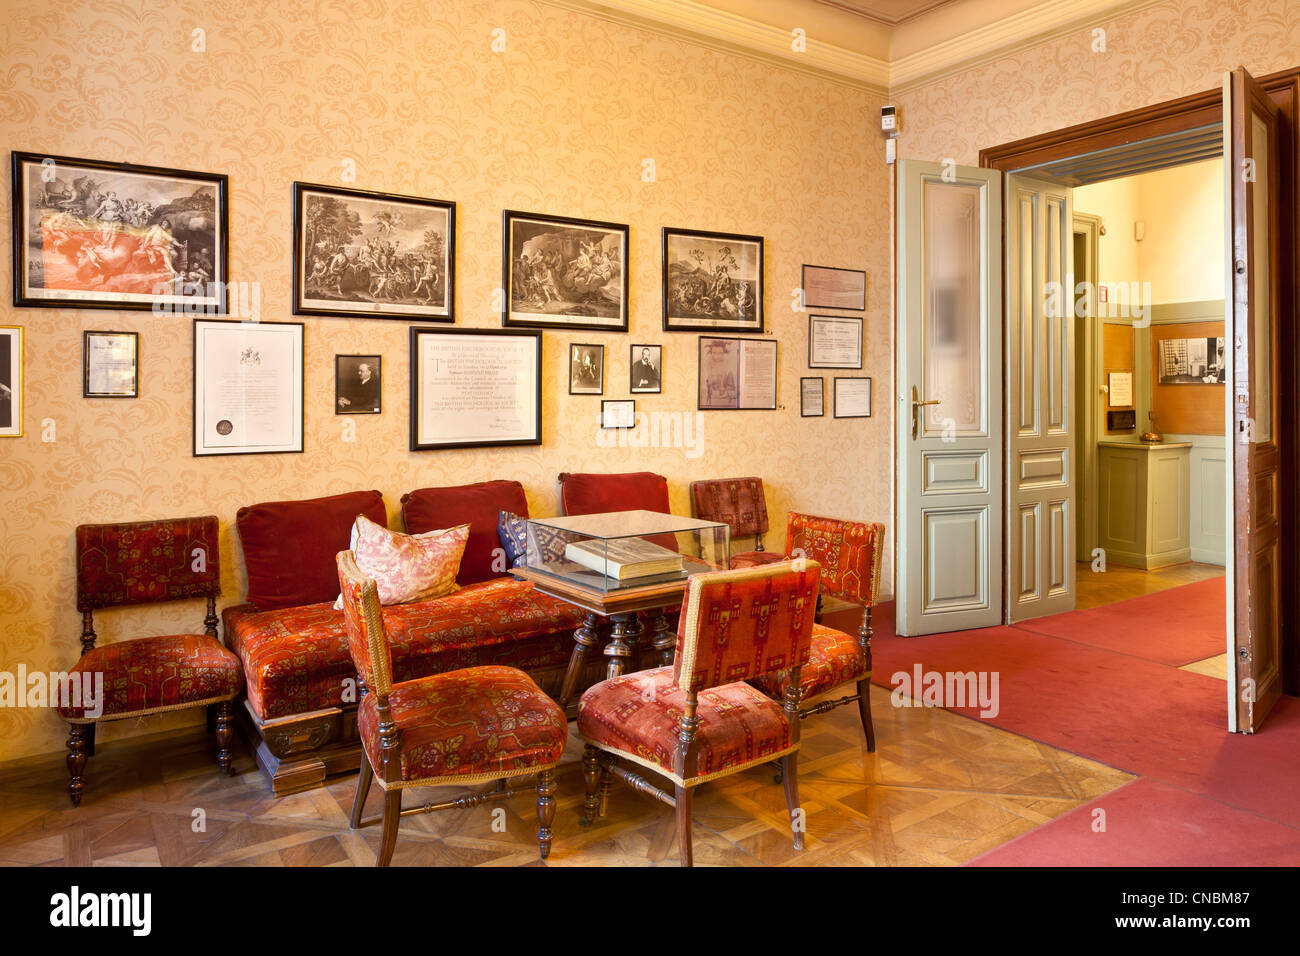 Austria, Vienna, Berggasse, Sigmund Freud Museum, where the father of psychoanalysis lived and worked from 1891 - Stock Image